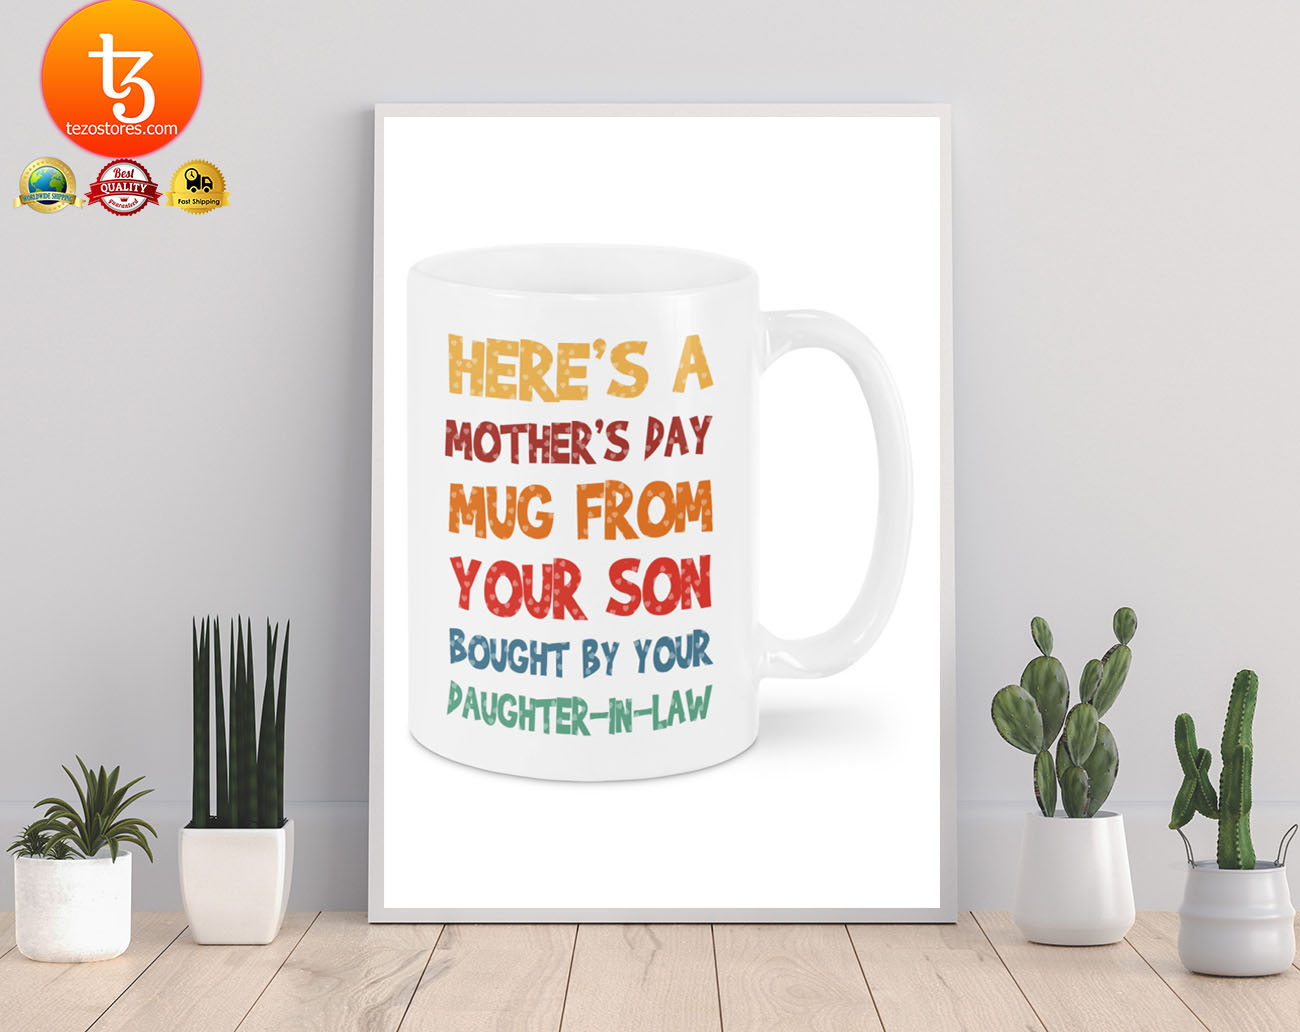 Here's a mother's day mug from your son mug 19